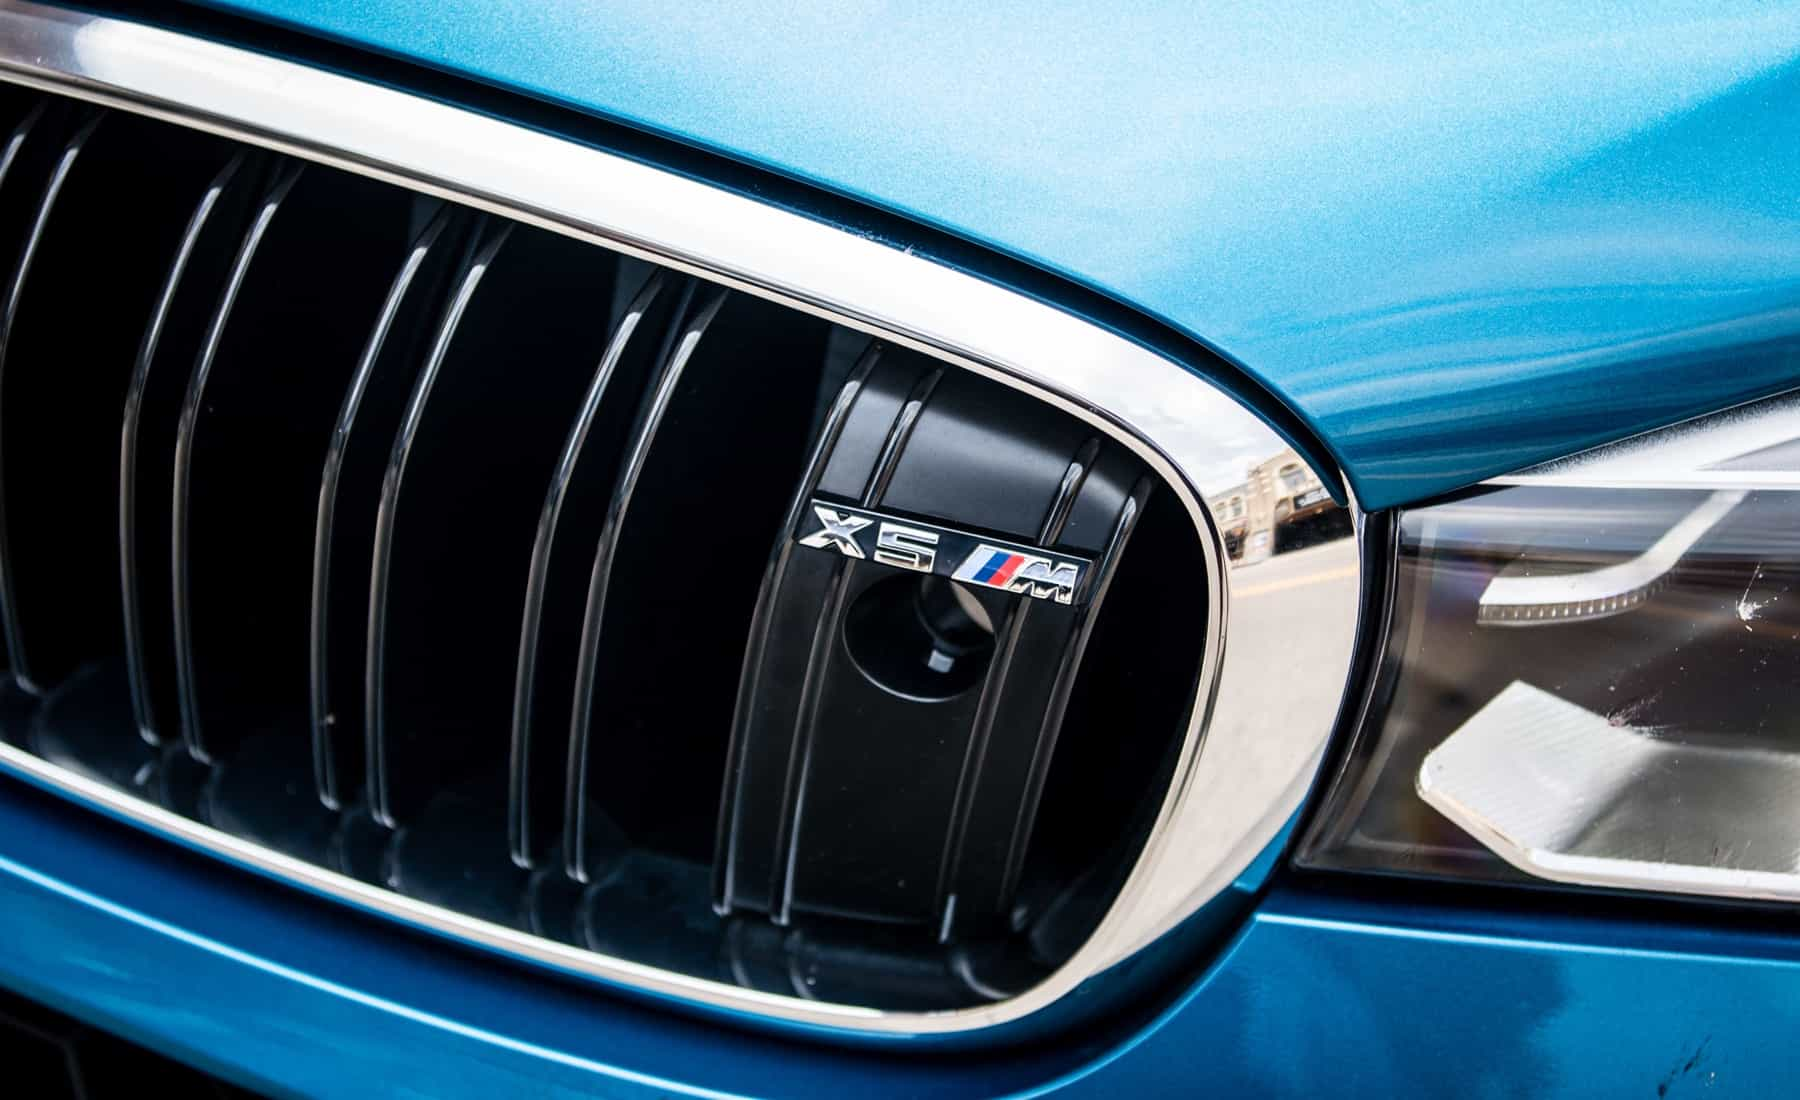 2017 BMW X5 M Exterior View Grille Badge (Photo 9 of 35)